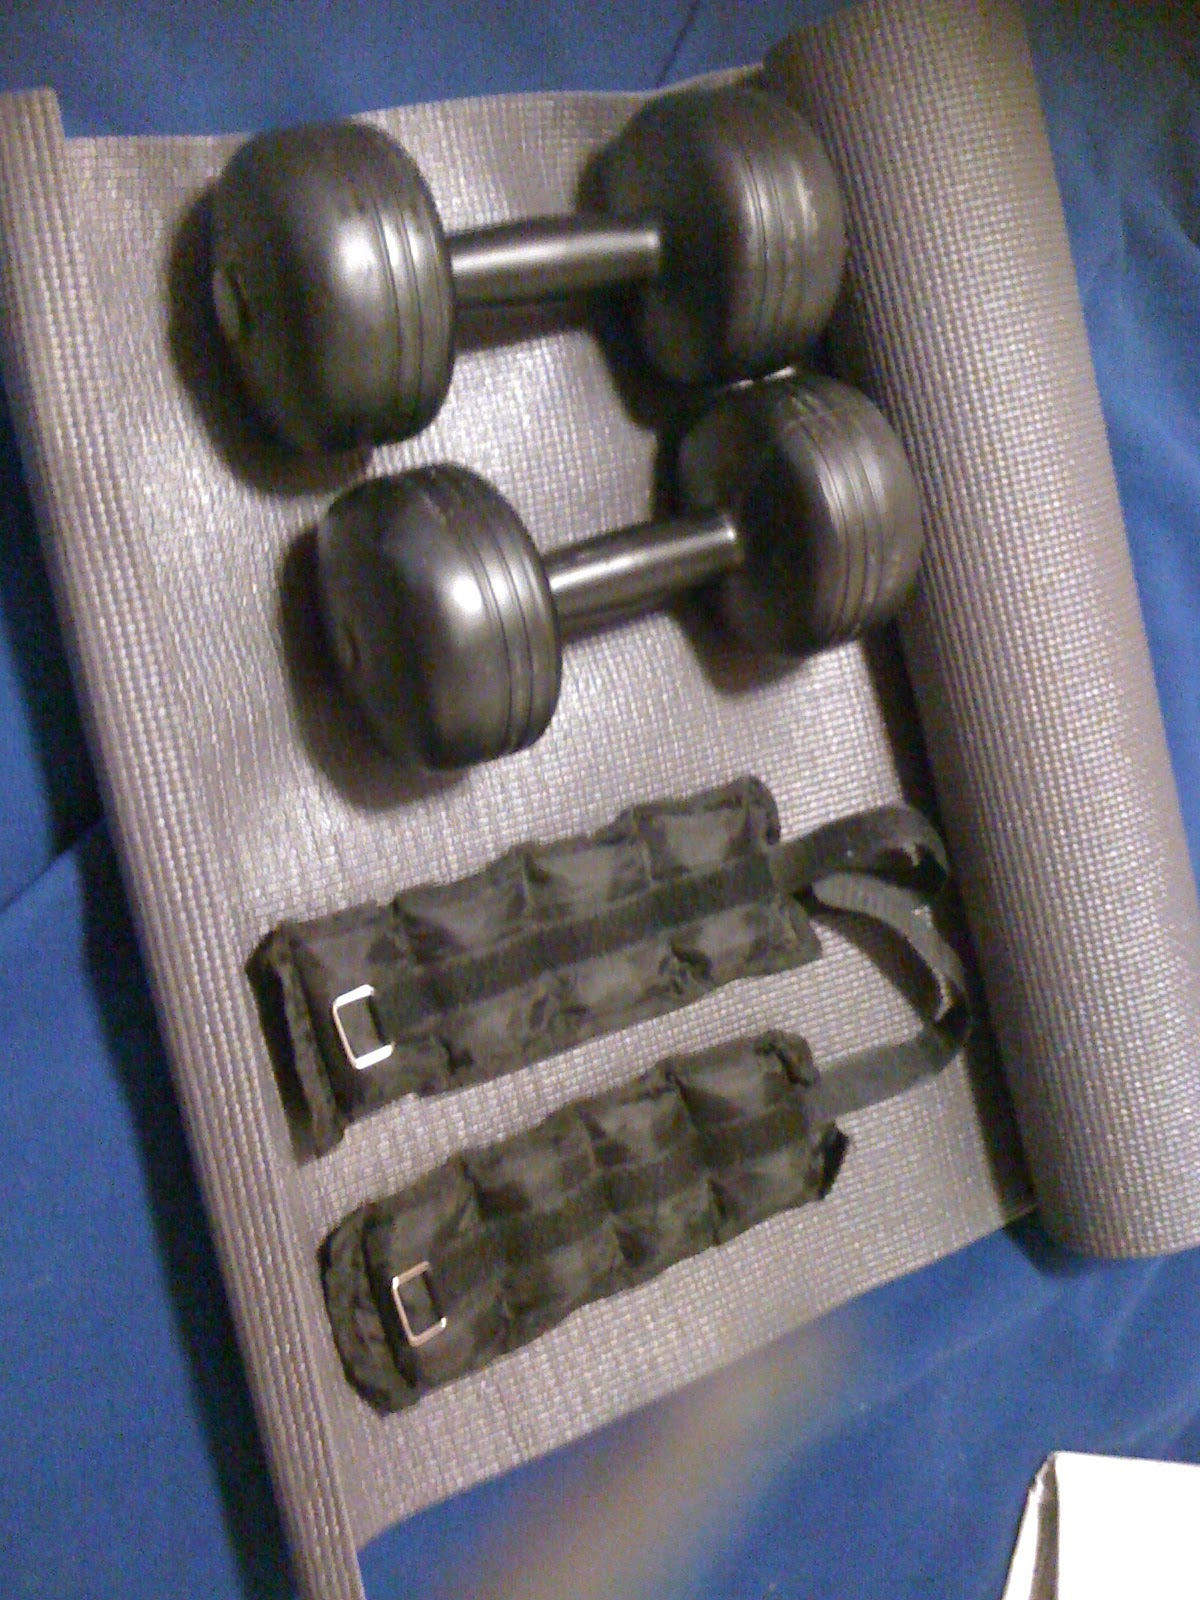 mat, 2 x 5kg weights; 2x 0.5 kg weights (for running)